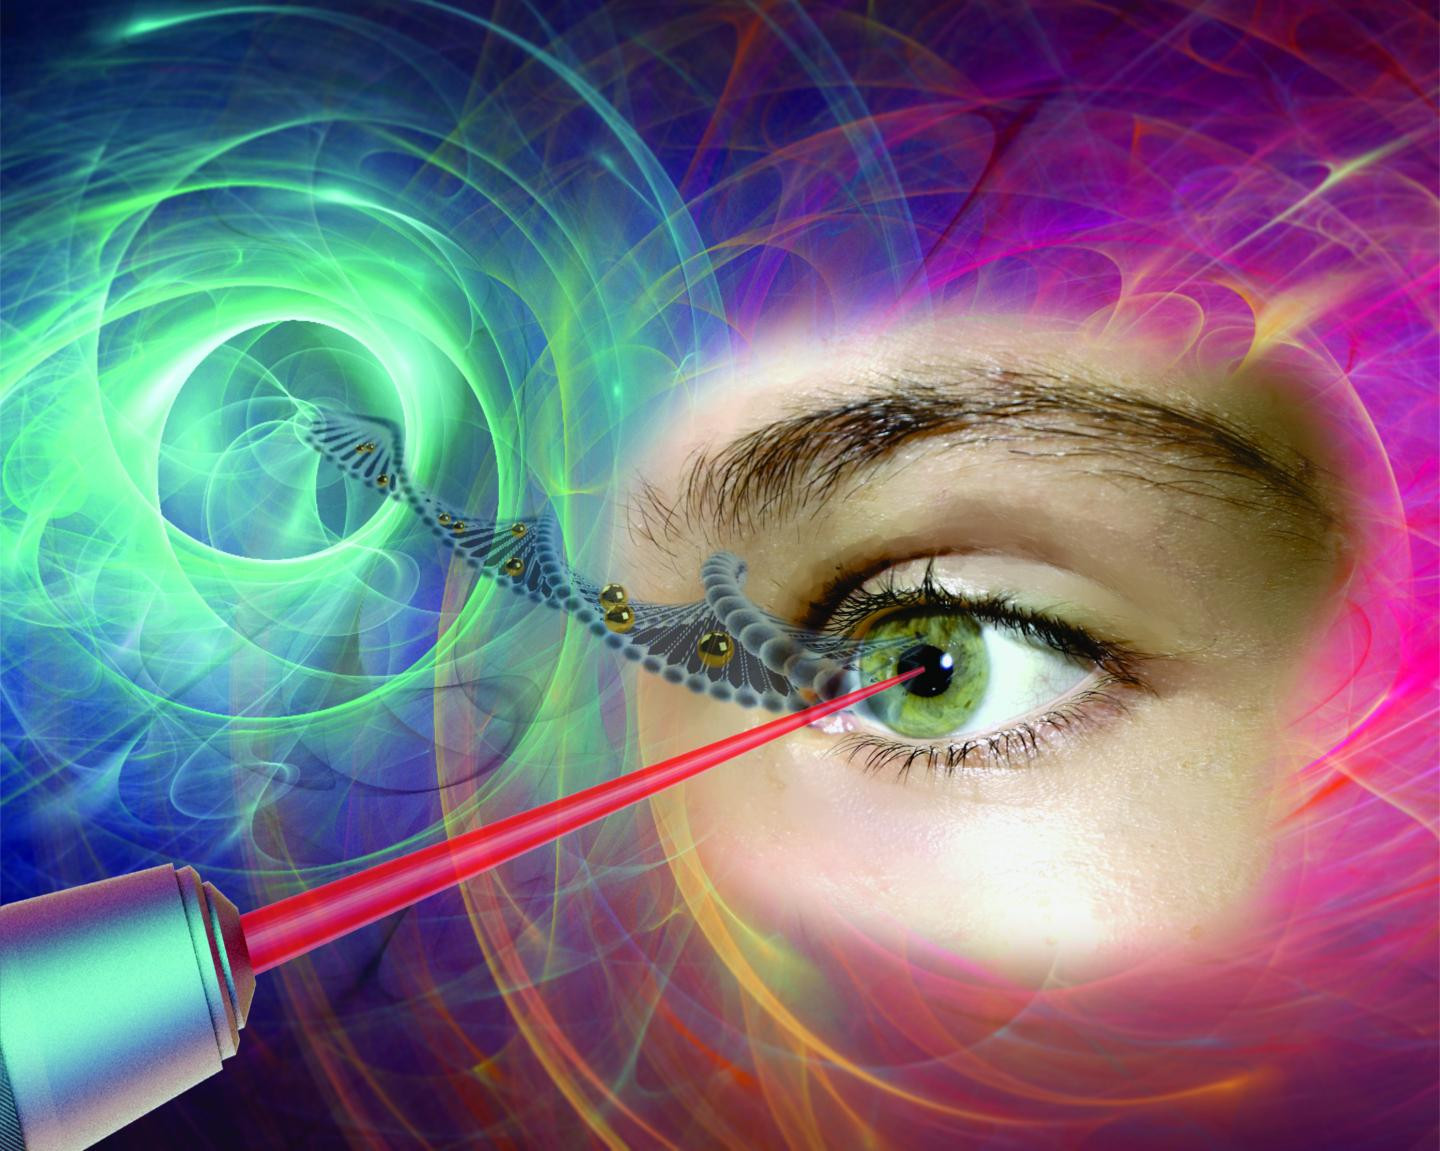 Non-Viral Ocular Gene Therapy Using Laser and Nanotechnology